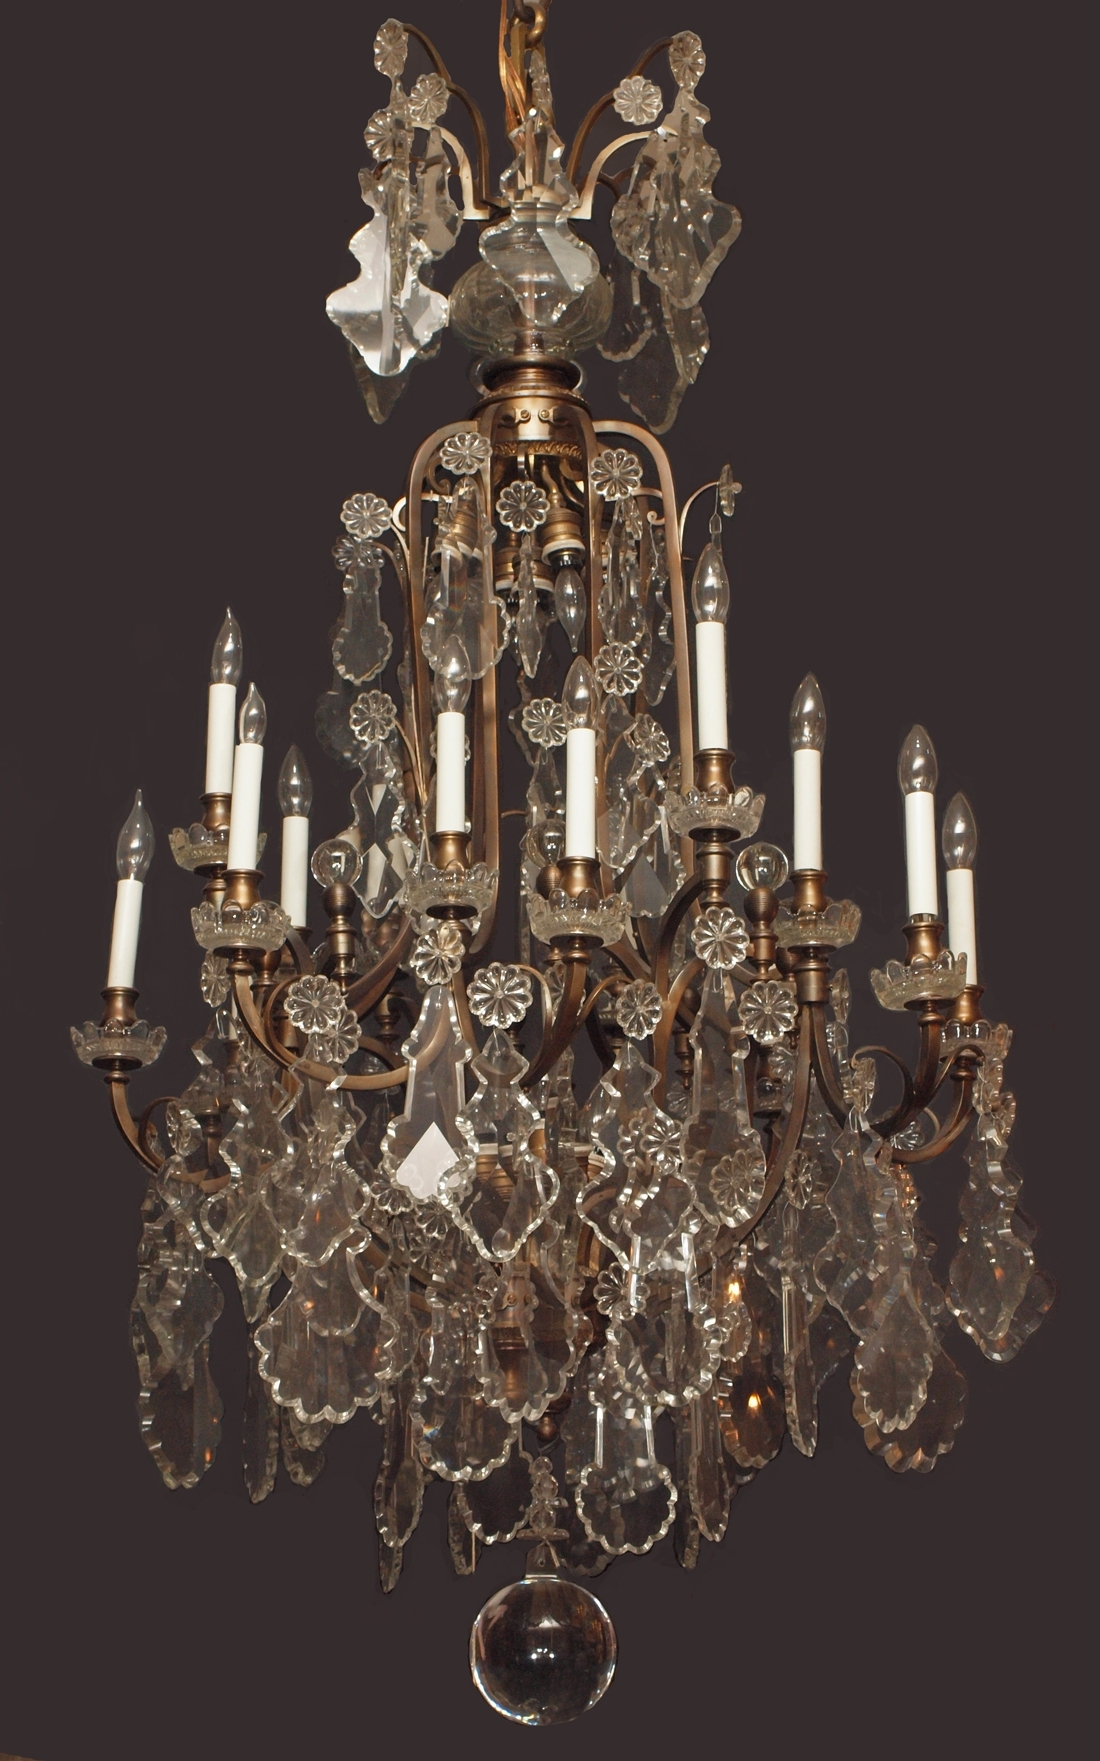 Antique French Chandeliers Throughout Trendy Chandeliers (View 3 of 15)